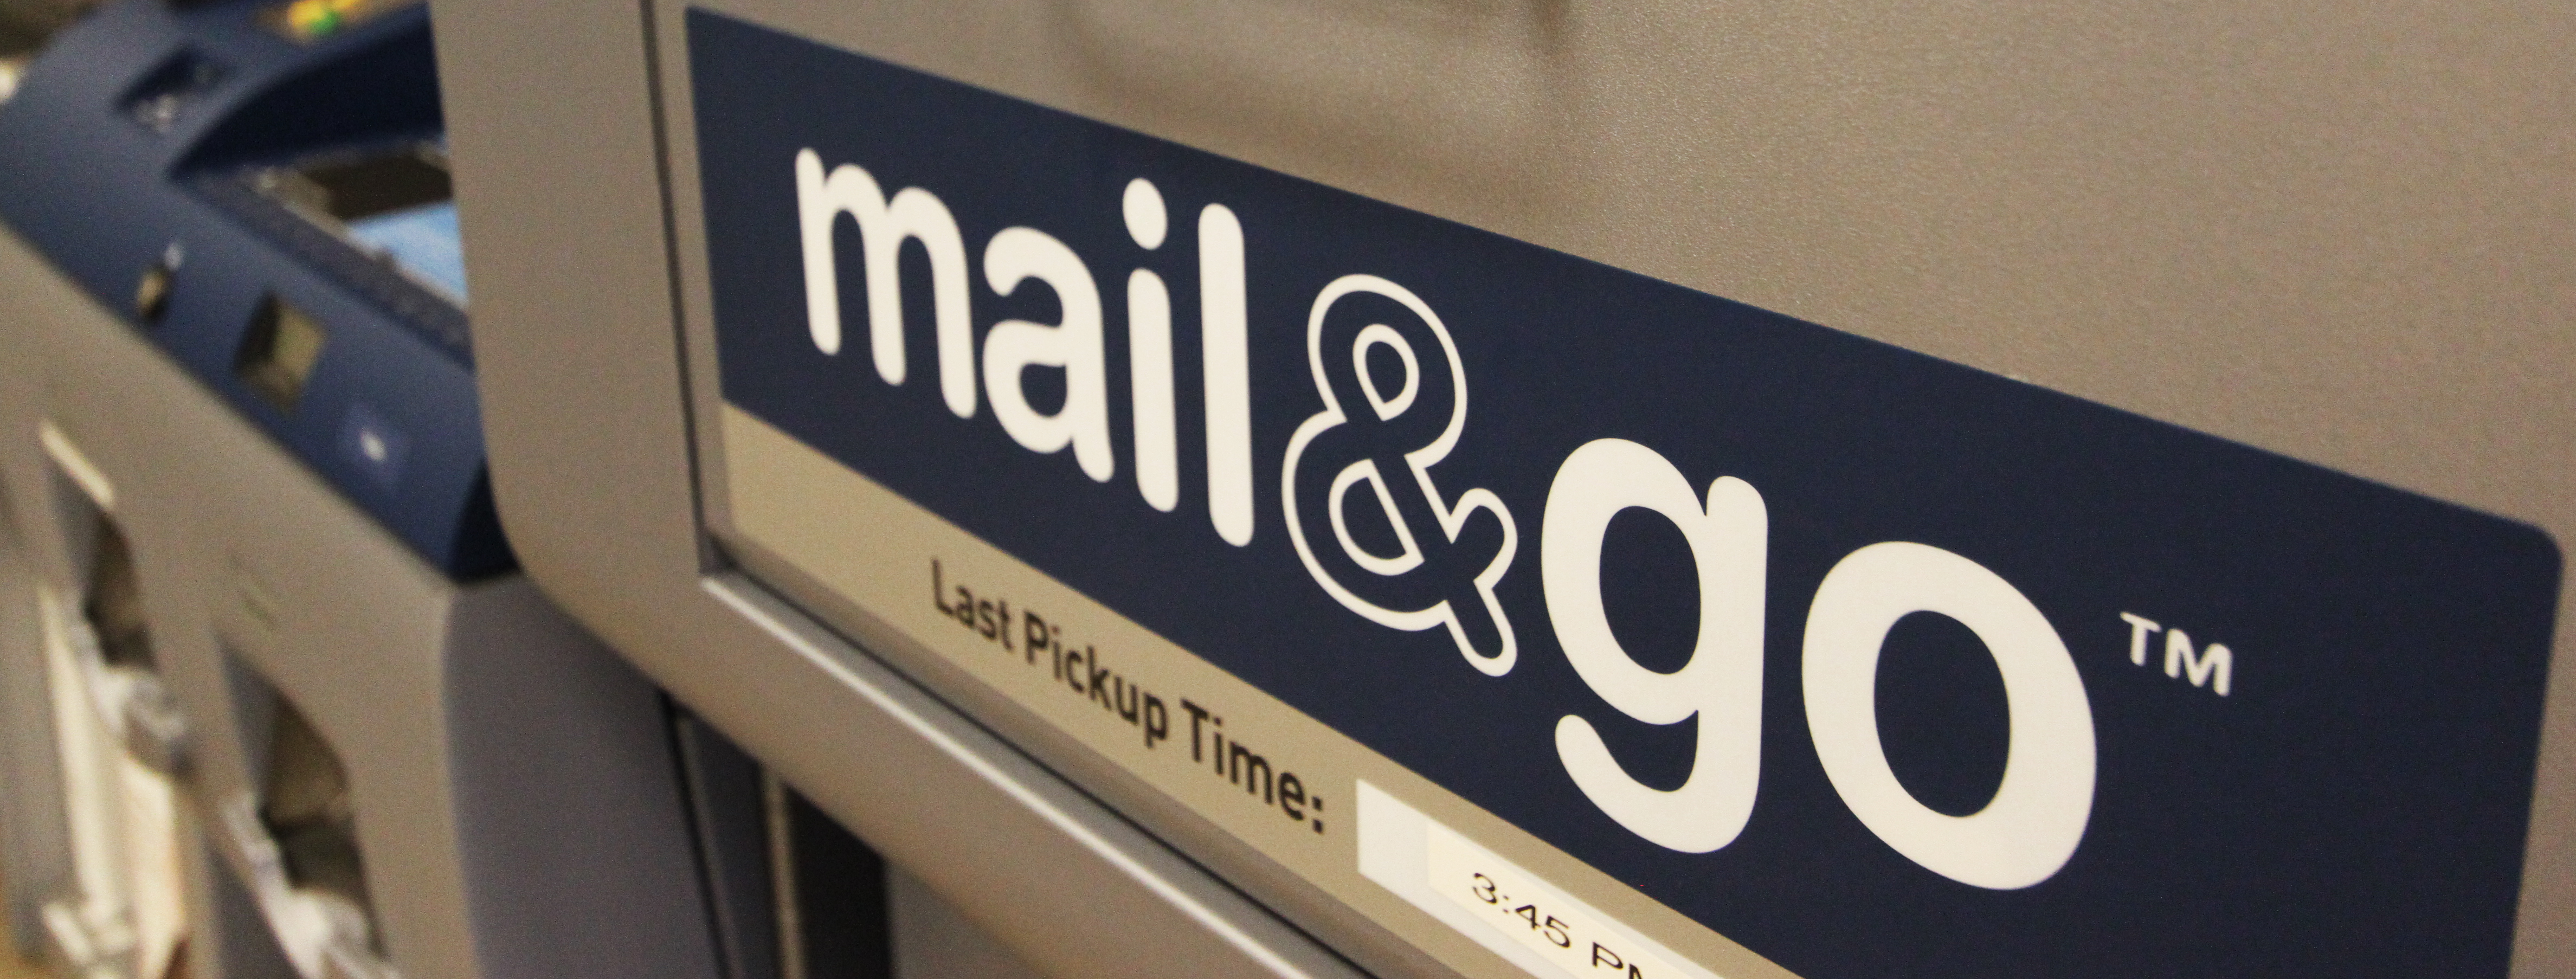 Mail and go Kiosk